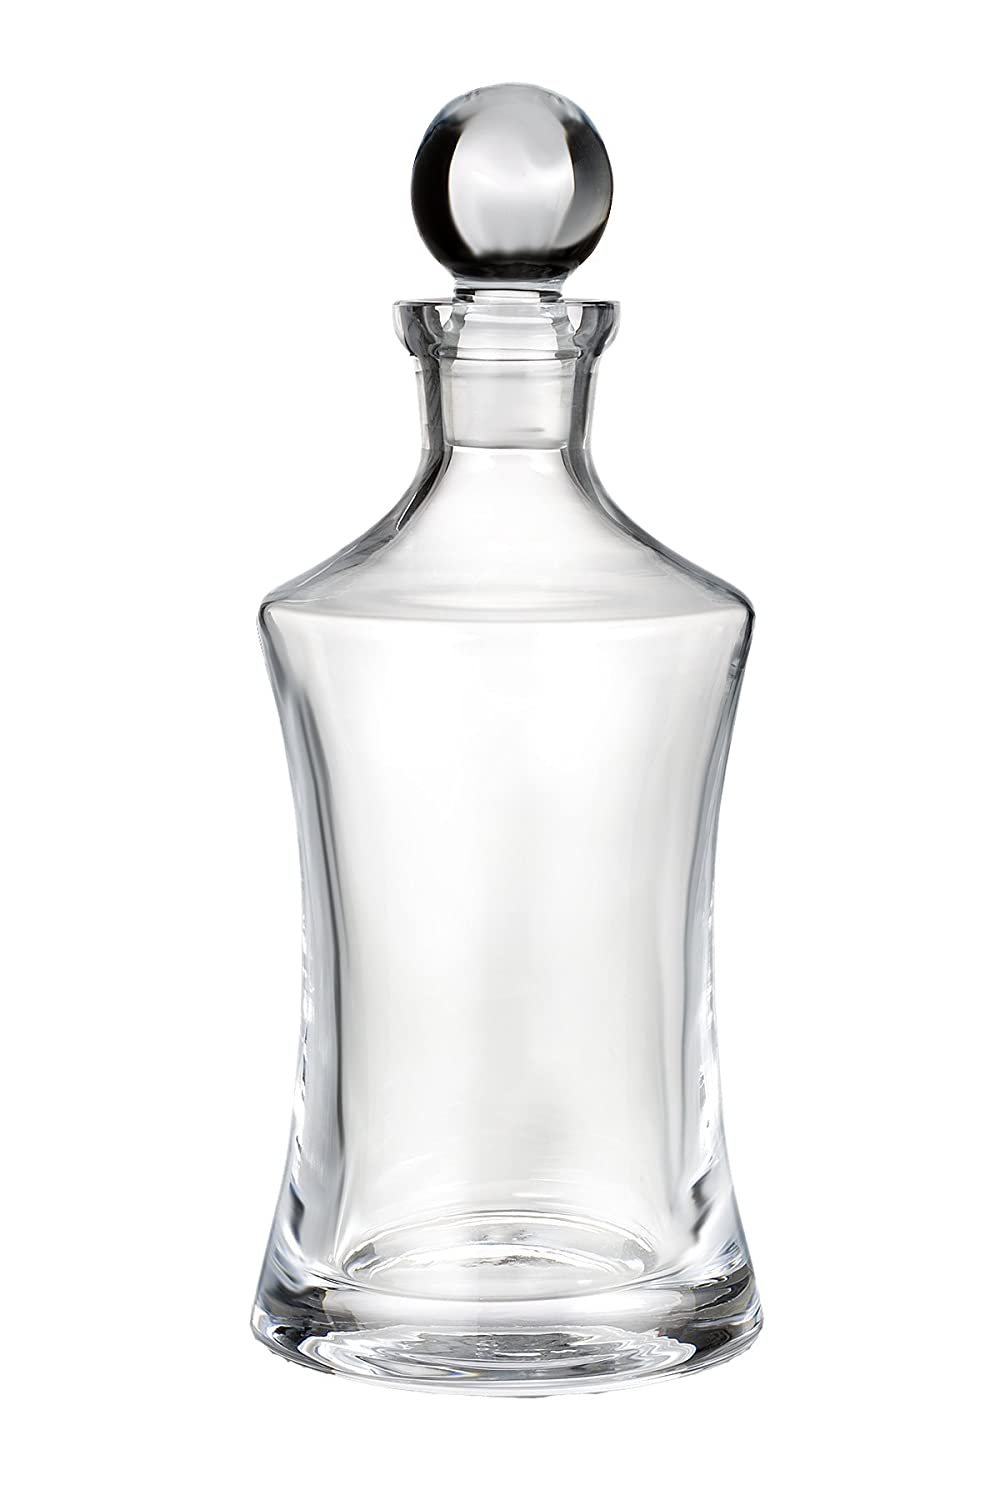 Marquis by Waterford Art of Mixology Vintage Hour Glass Decanter, 29-Ounce by Marquis By Waterford B004Q7JRD4